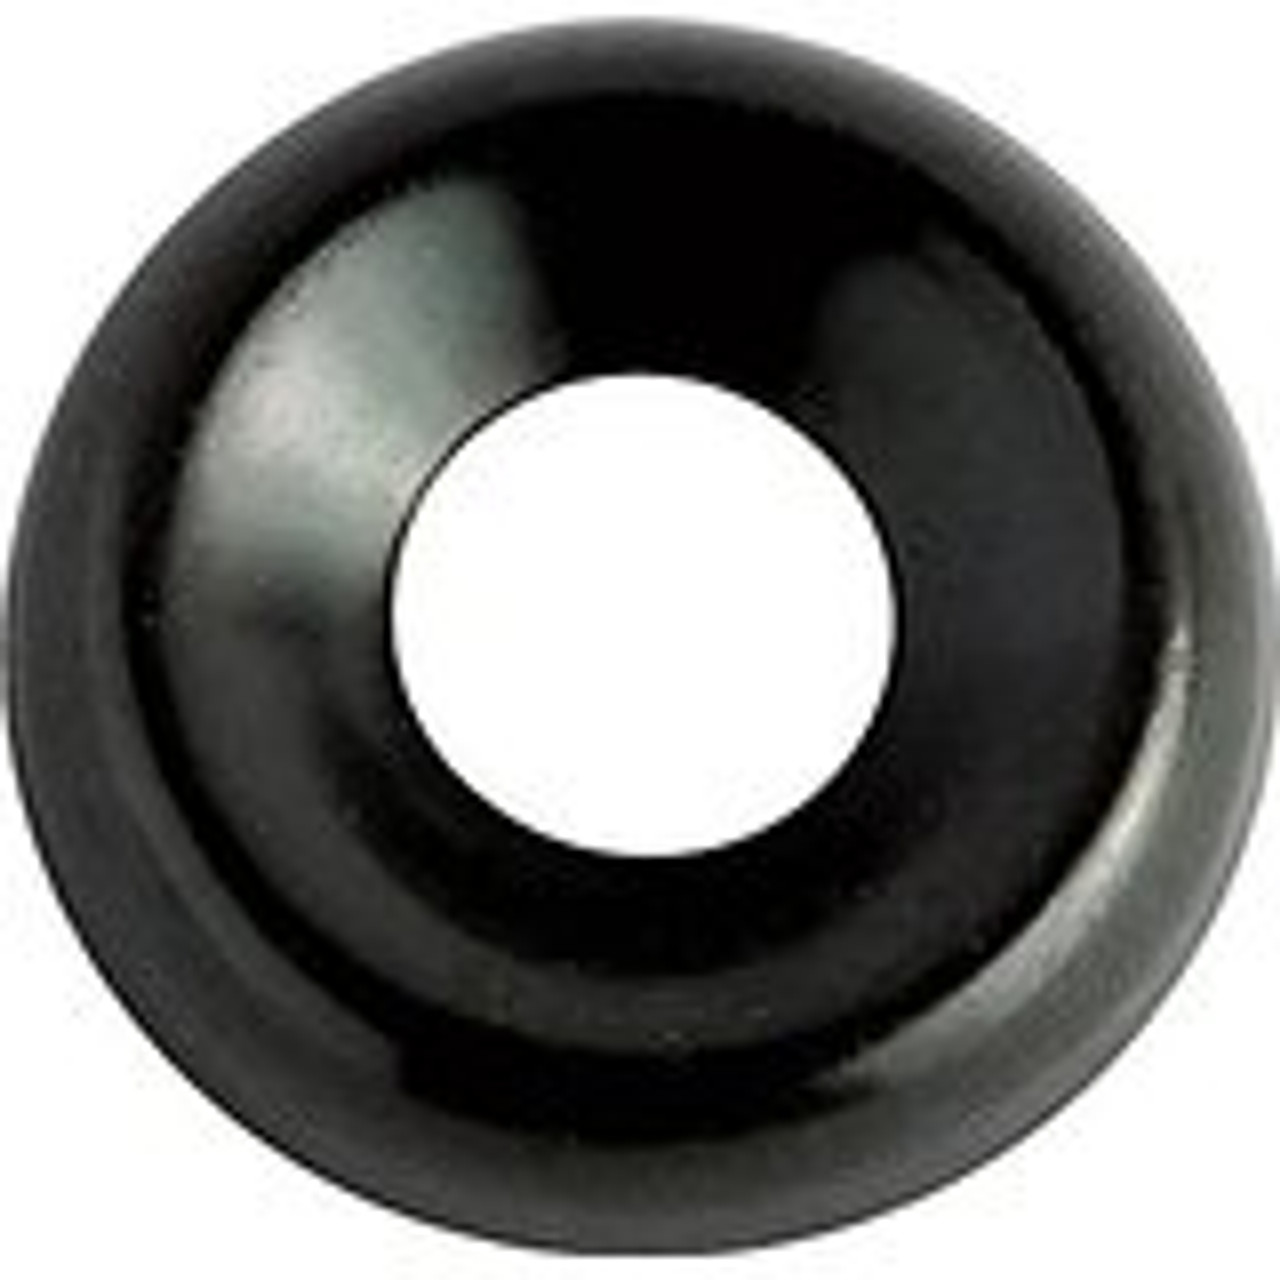 """Countersunk Type Washer Screw Size: #6 I.D. 11/64"""" O.D. 7/16"""" Black Zinc Plated Brass 100 Per Box Click Next Image For Washer Size Chart"""